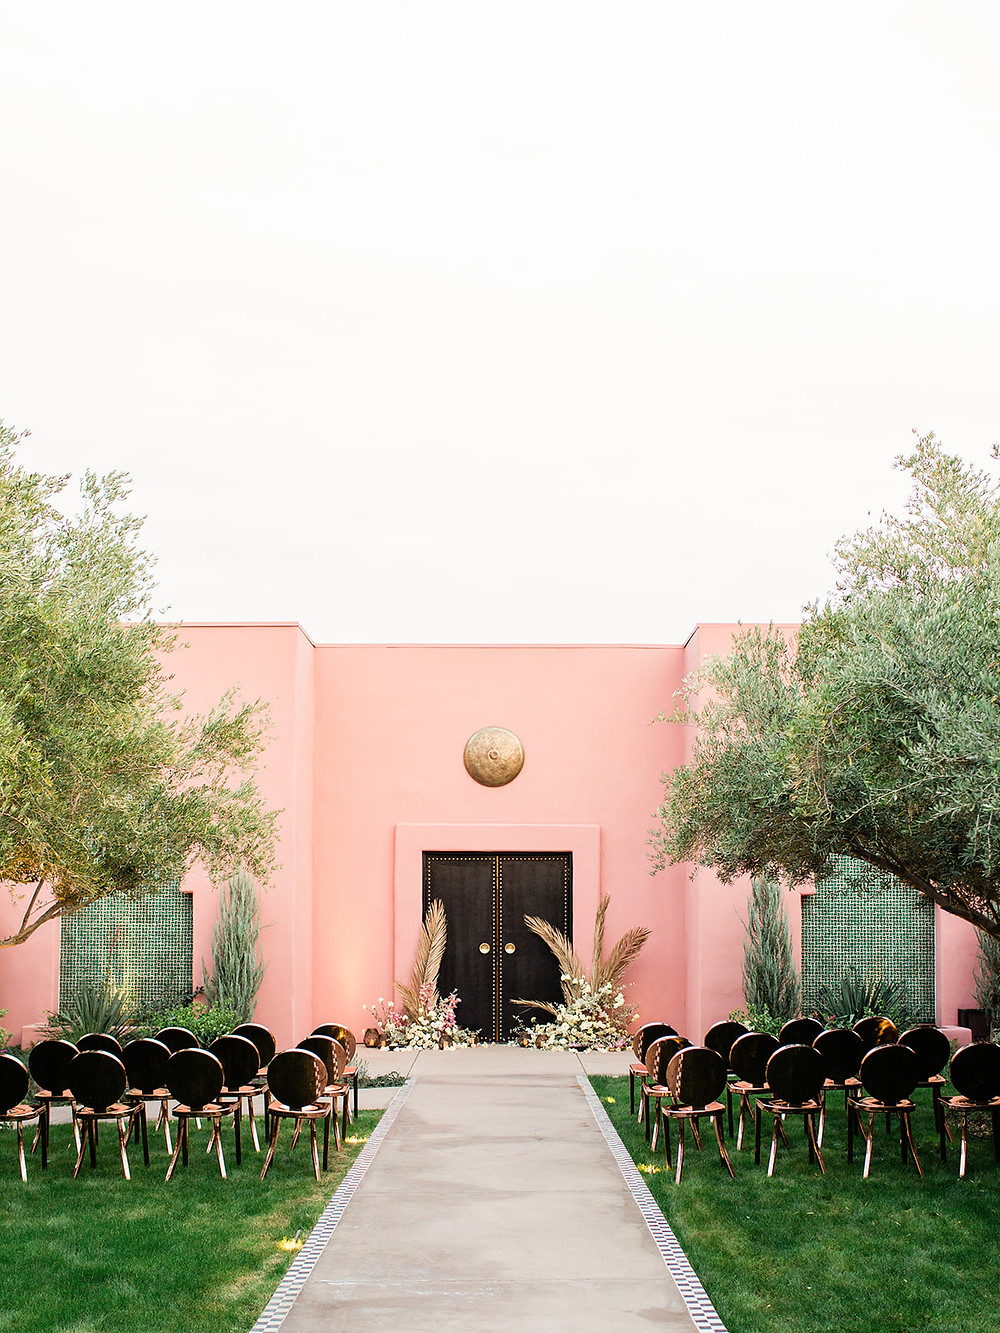 Modern Moroccan Desert Glam Editorial - LGBTQ Wedding Editoiral - Wedding Design Inspiration - Muted Desert Tones - Modern Glam Jungle Chic Modern ceremony space with copper chairs and pink wall